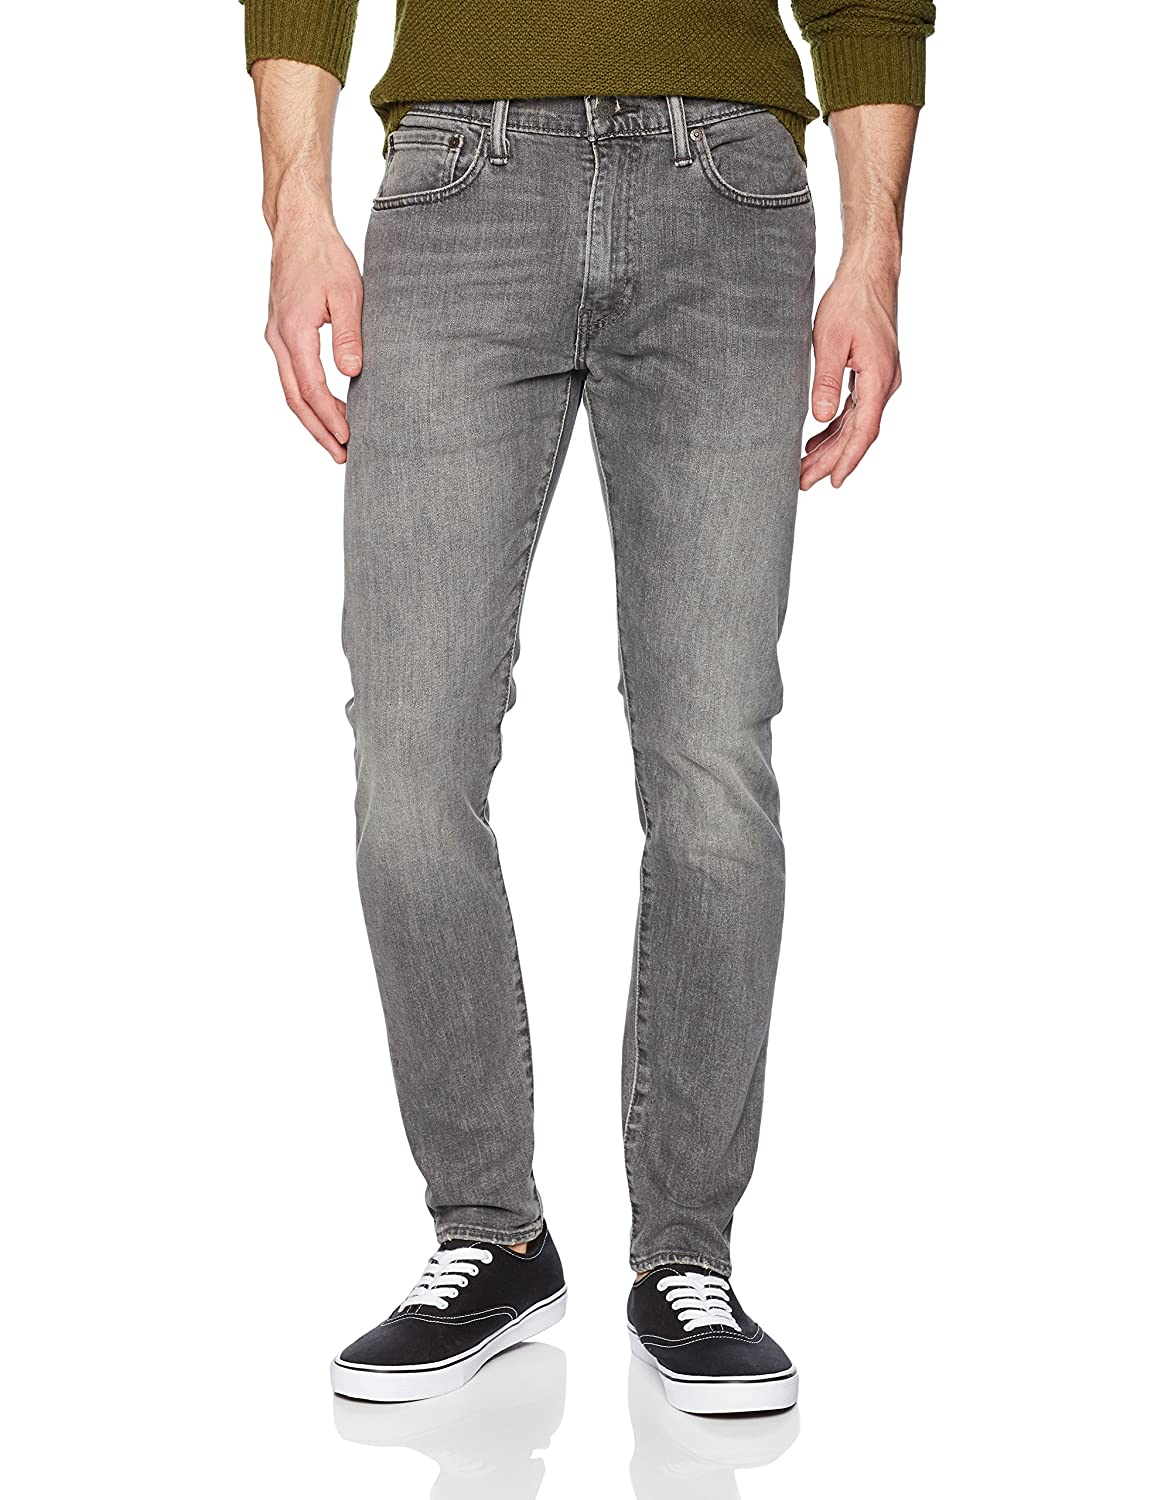 Levi's Men's 512 Slim Taper Fit Levi's 323164